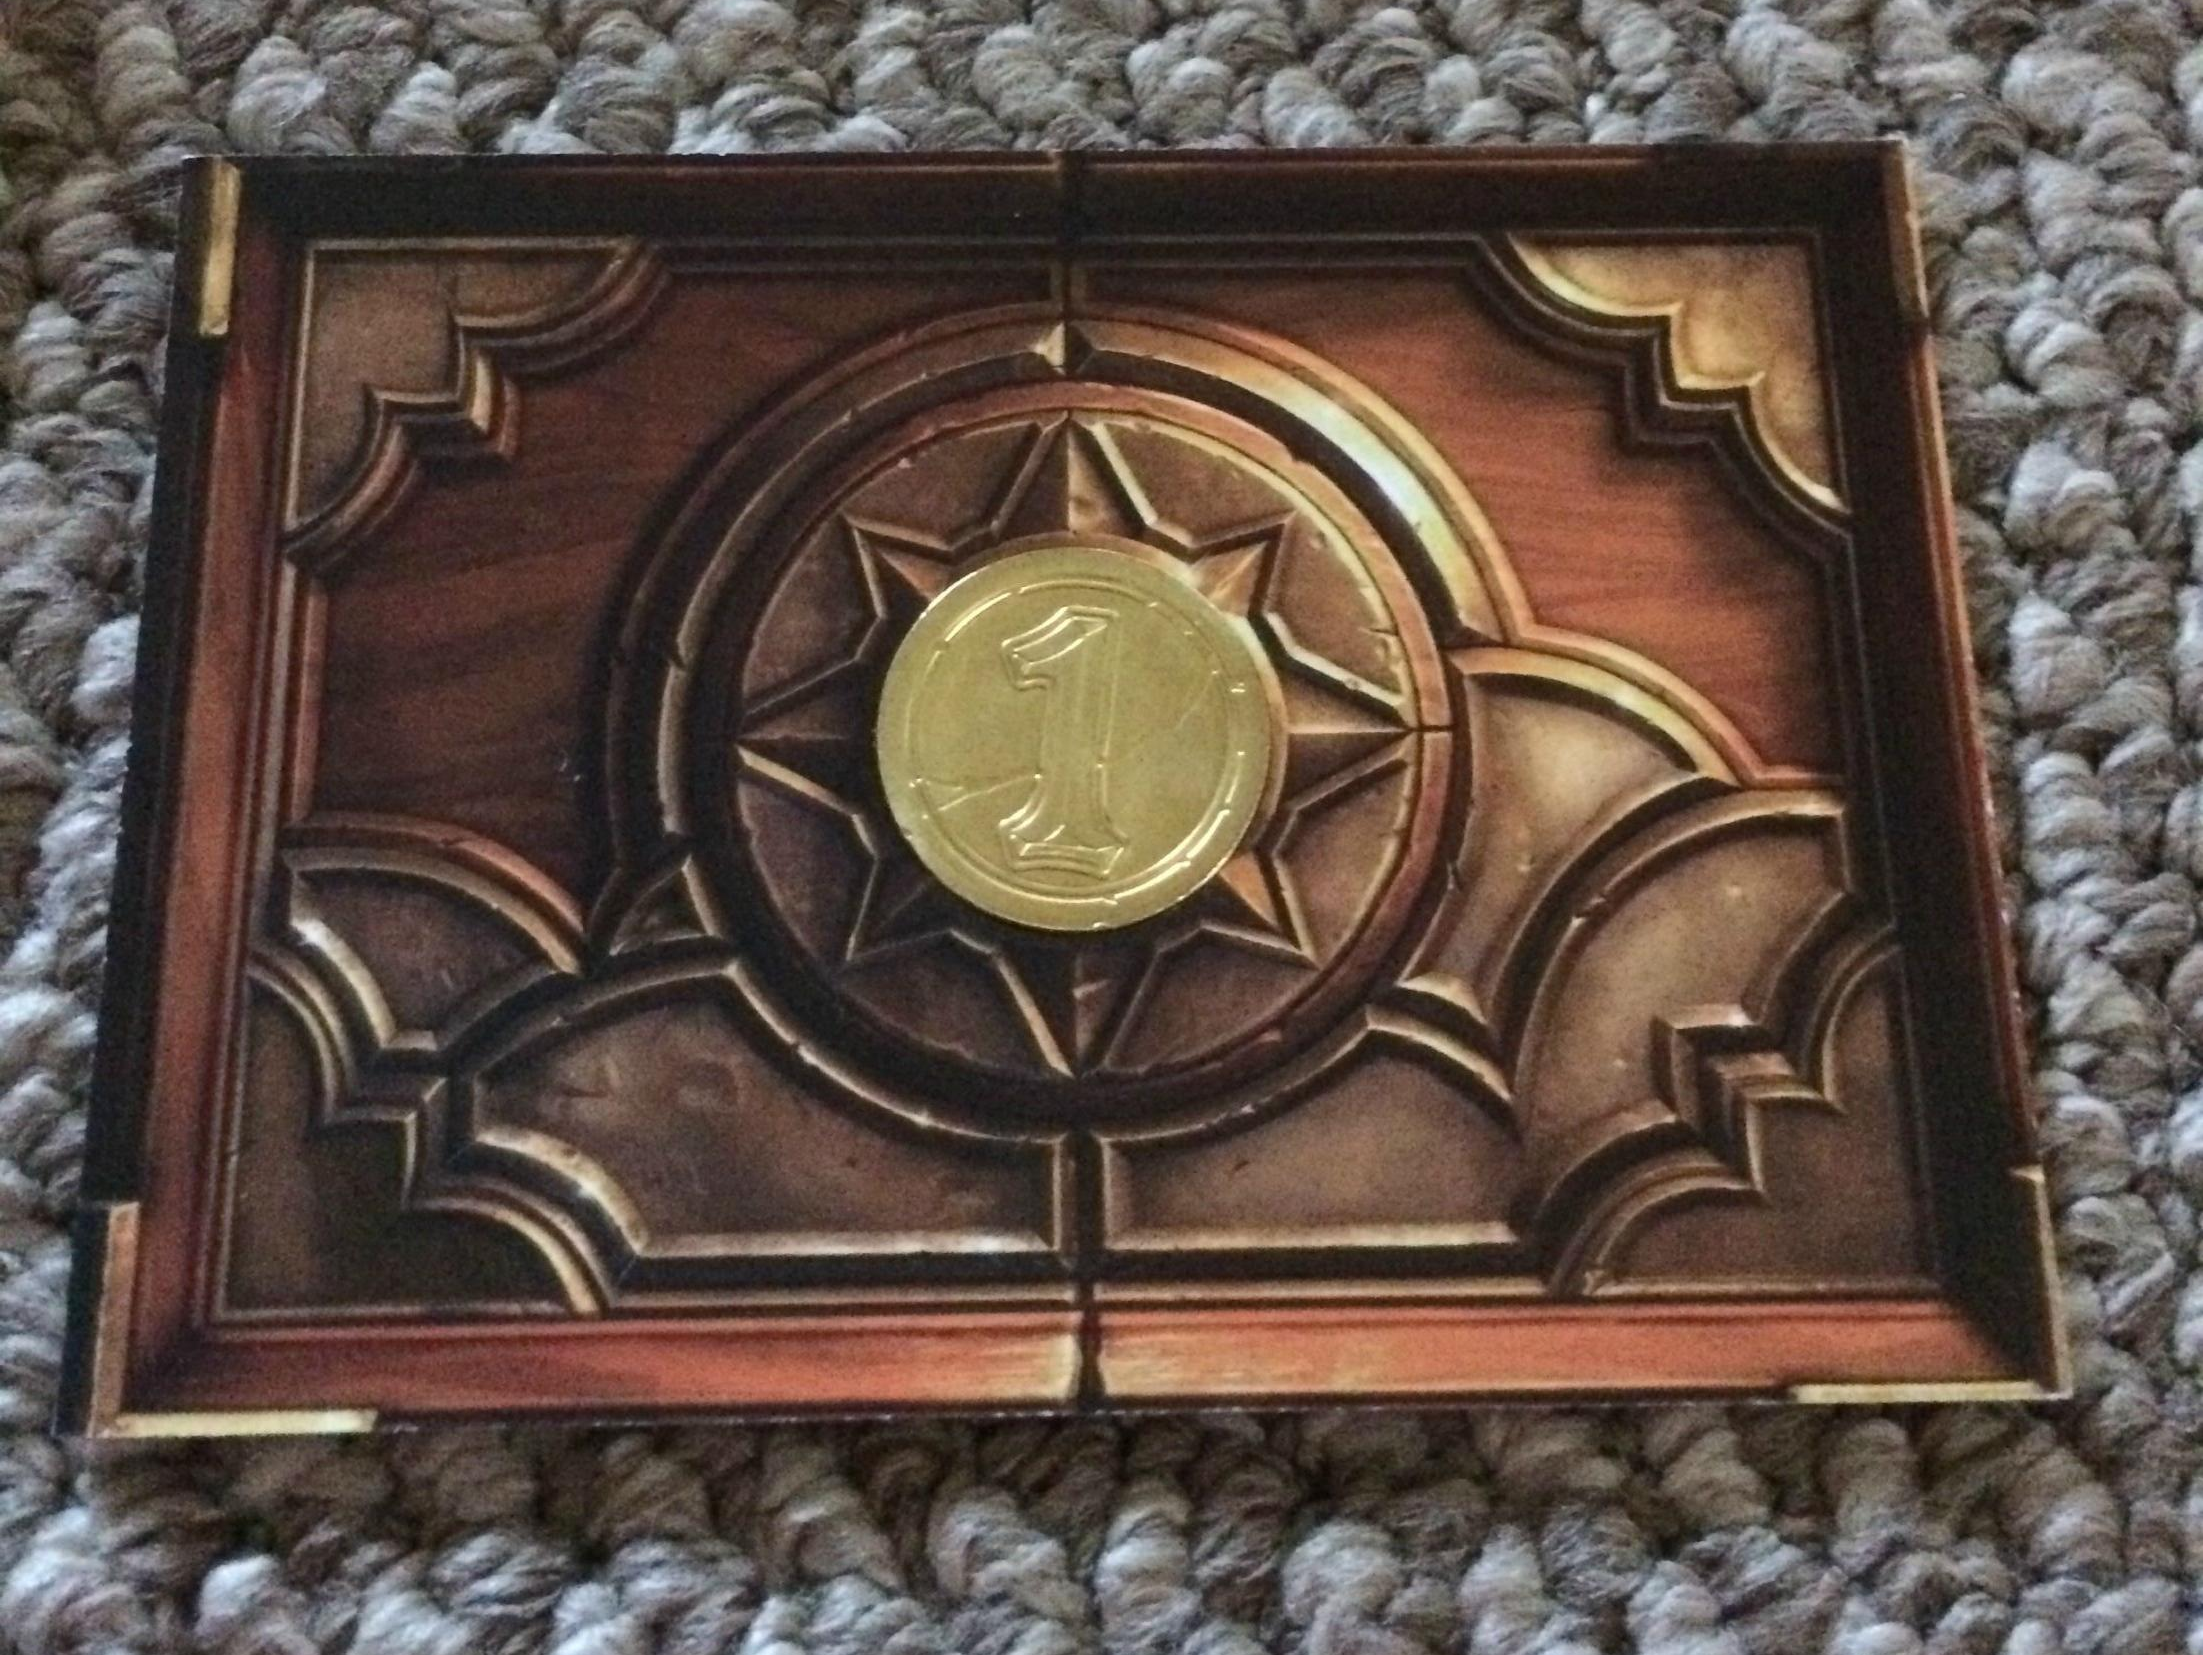 Hearthstone September Loot Crate Items - Free Card Pack! - News